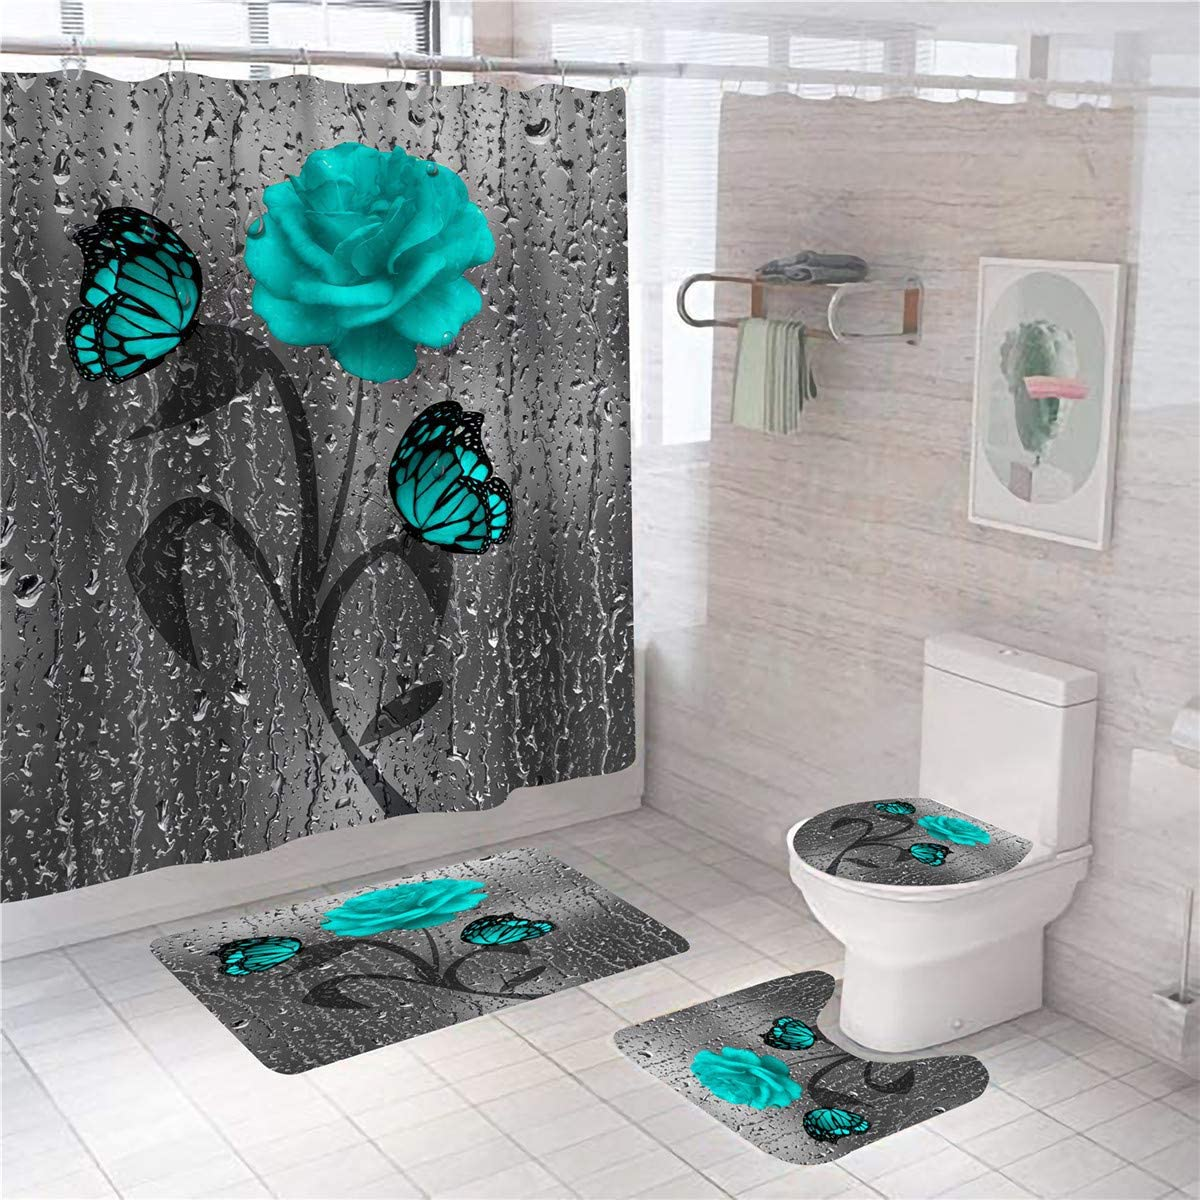 Funky suns 3 piece artist bathroom set accessories Include shower curtain Feathers and bath mat colorful flowers mixed media painting by C.Cambrea. boho chic towel